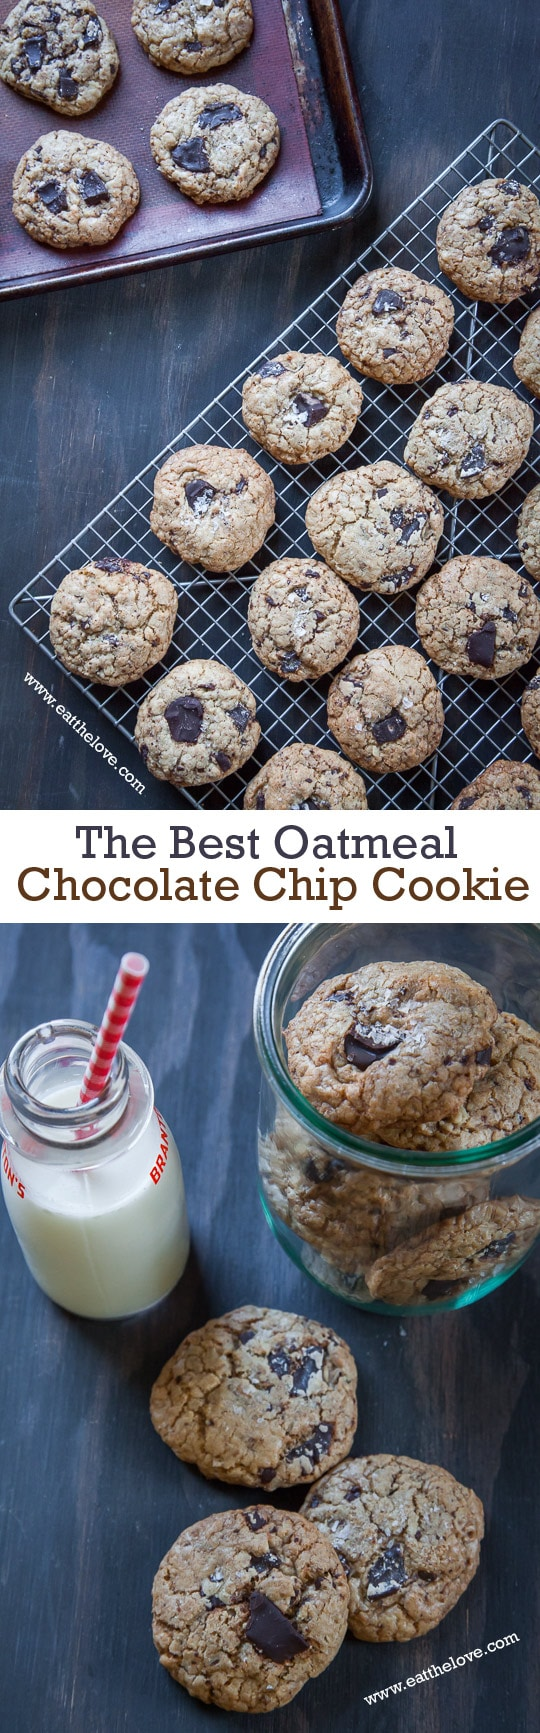 Oreo Chocolate Chip Cookies   Maverick Baking